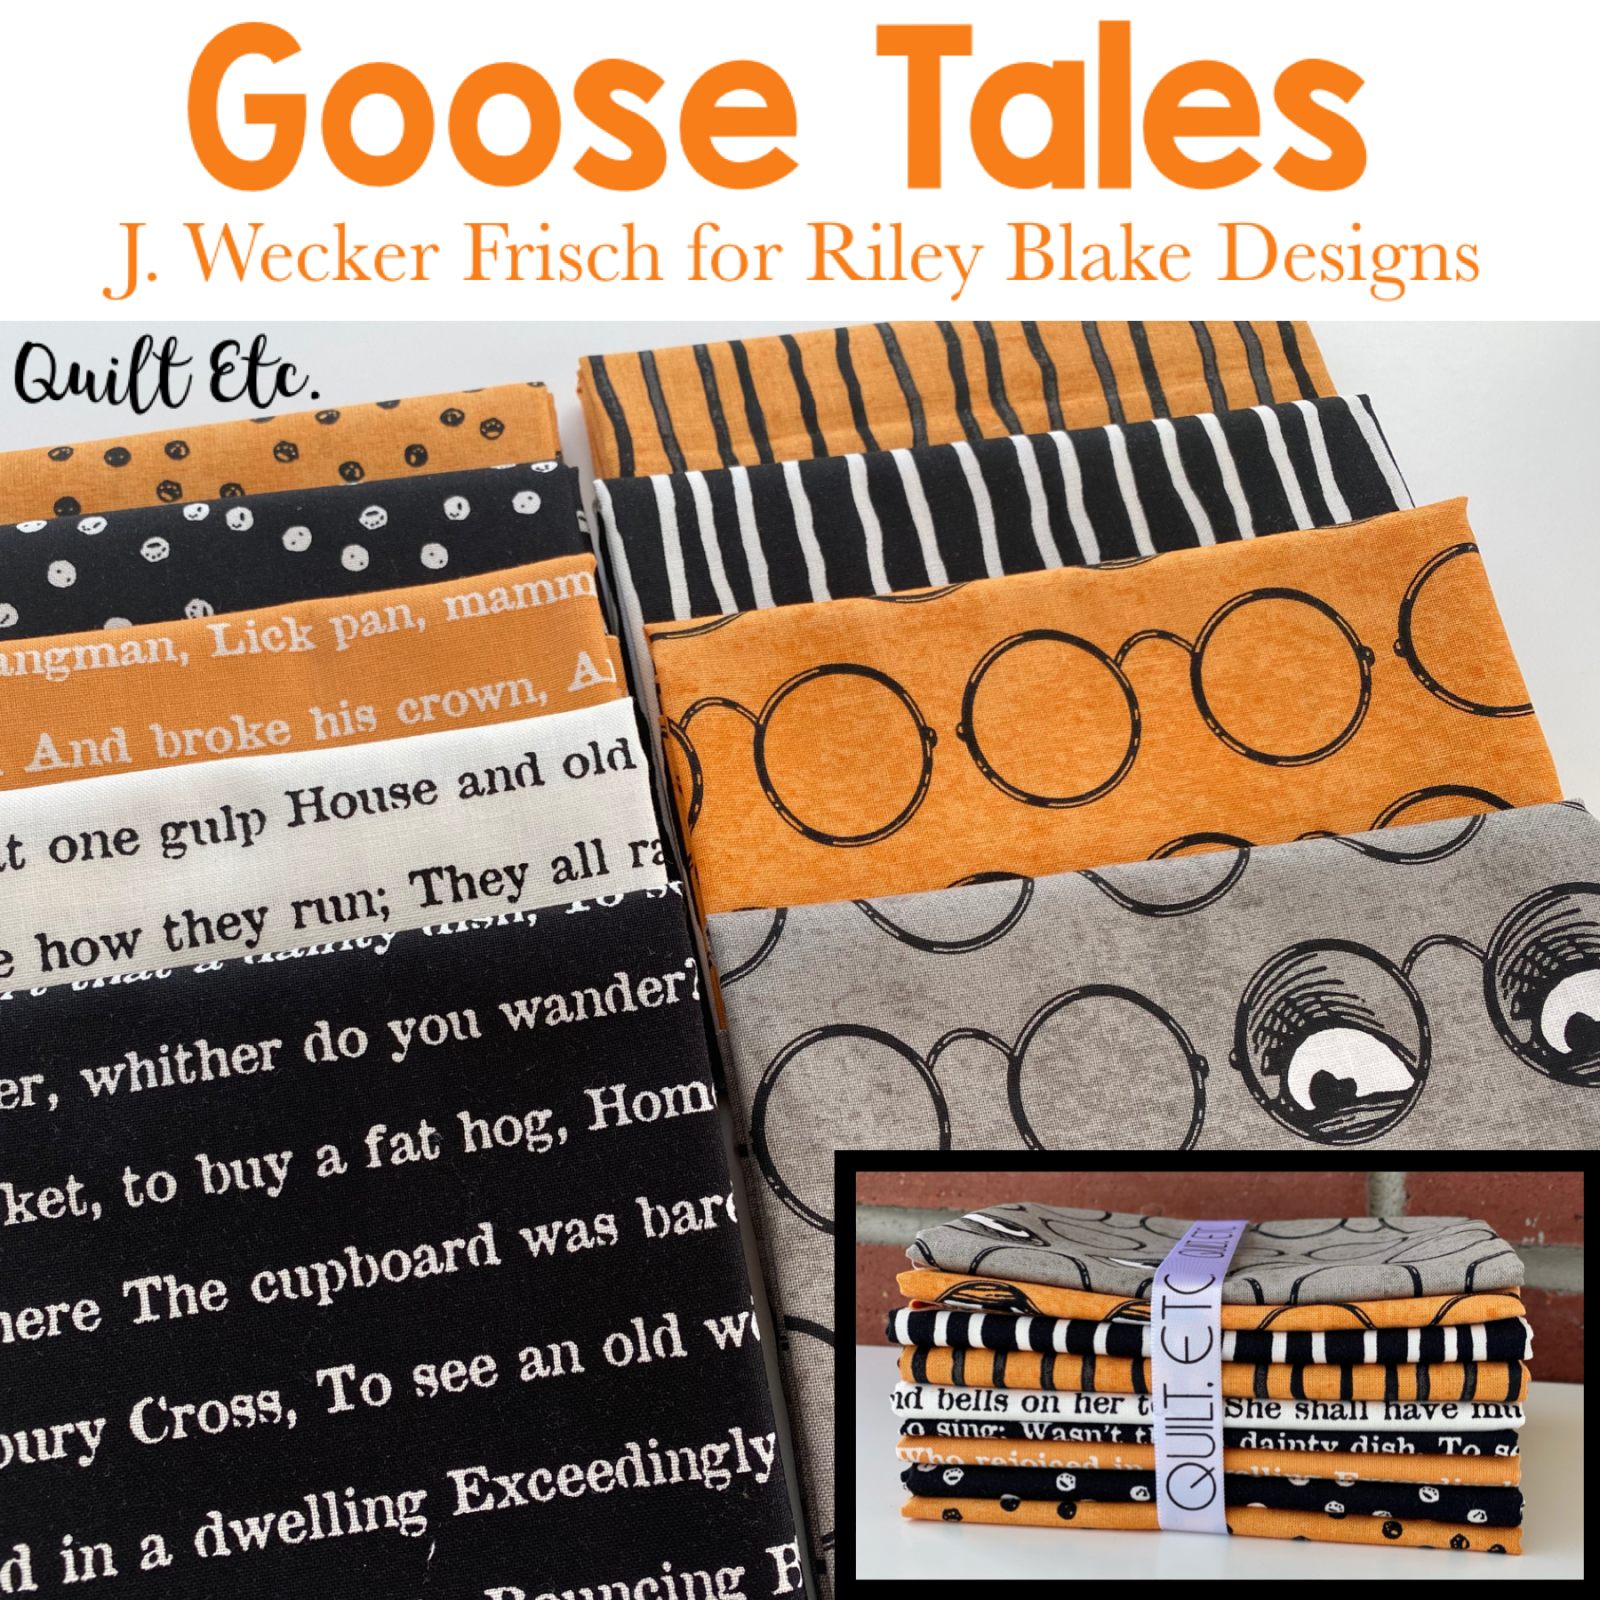 Goose Tales